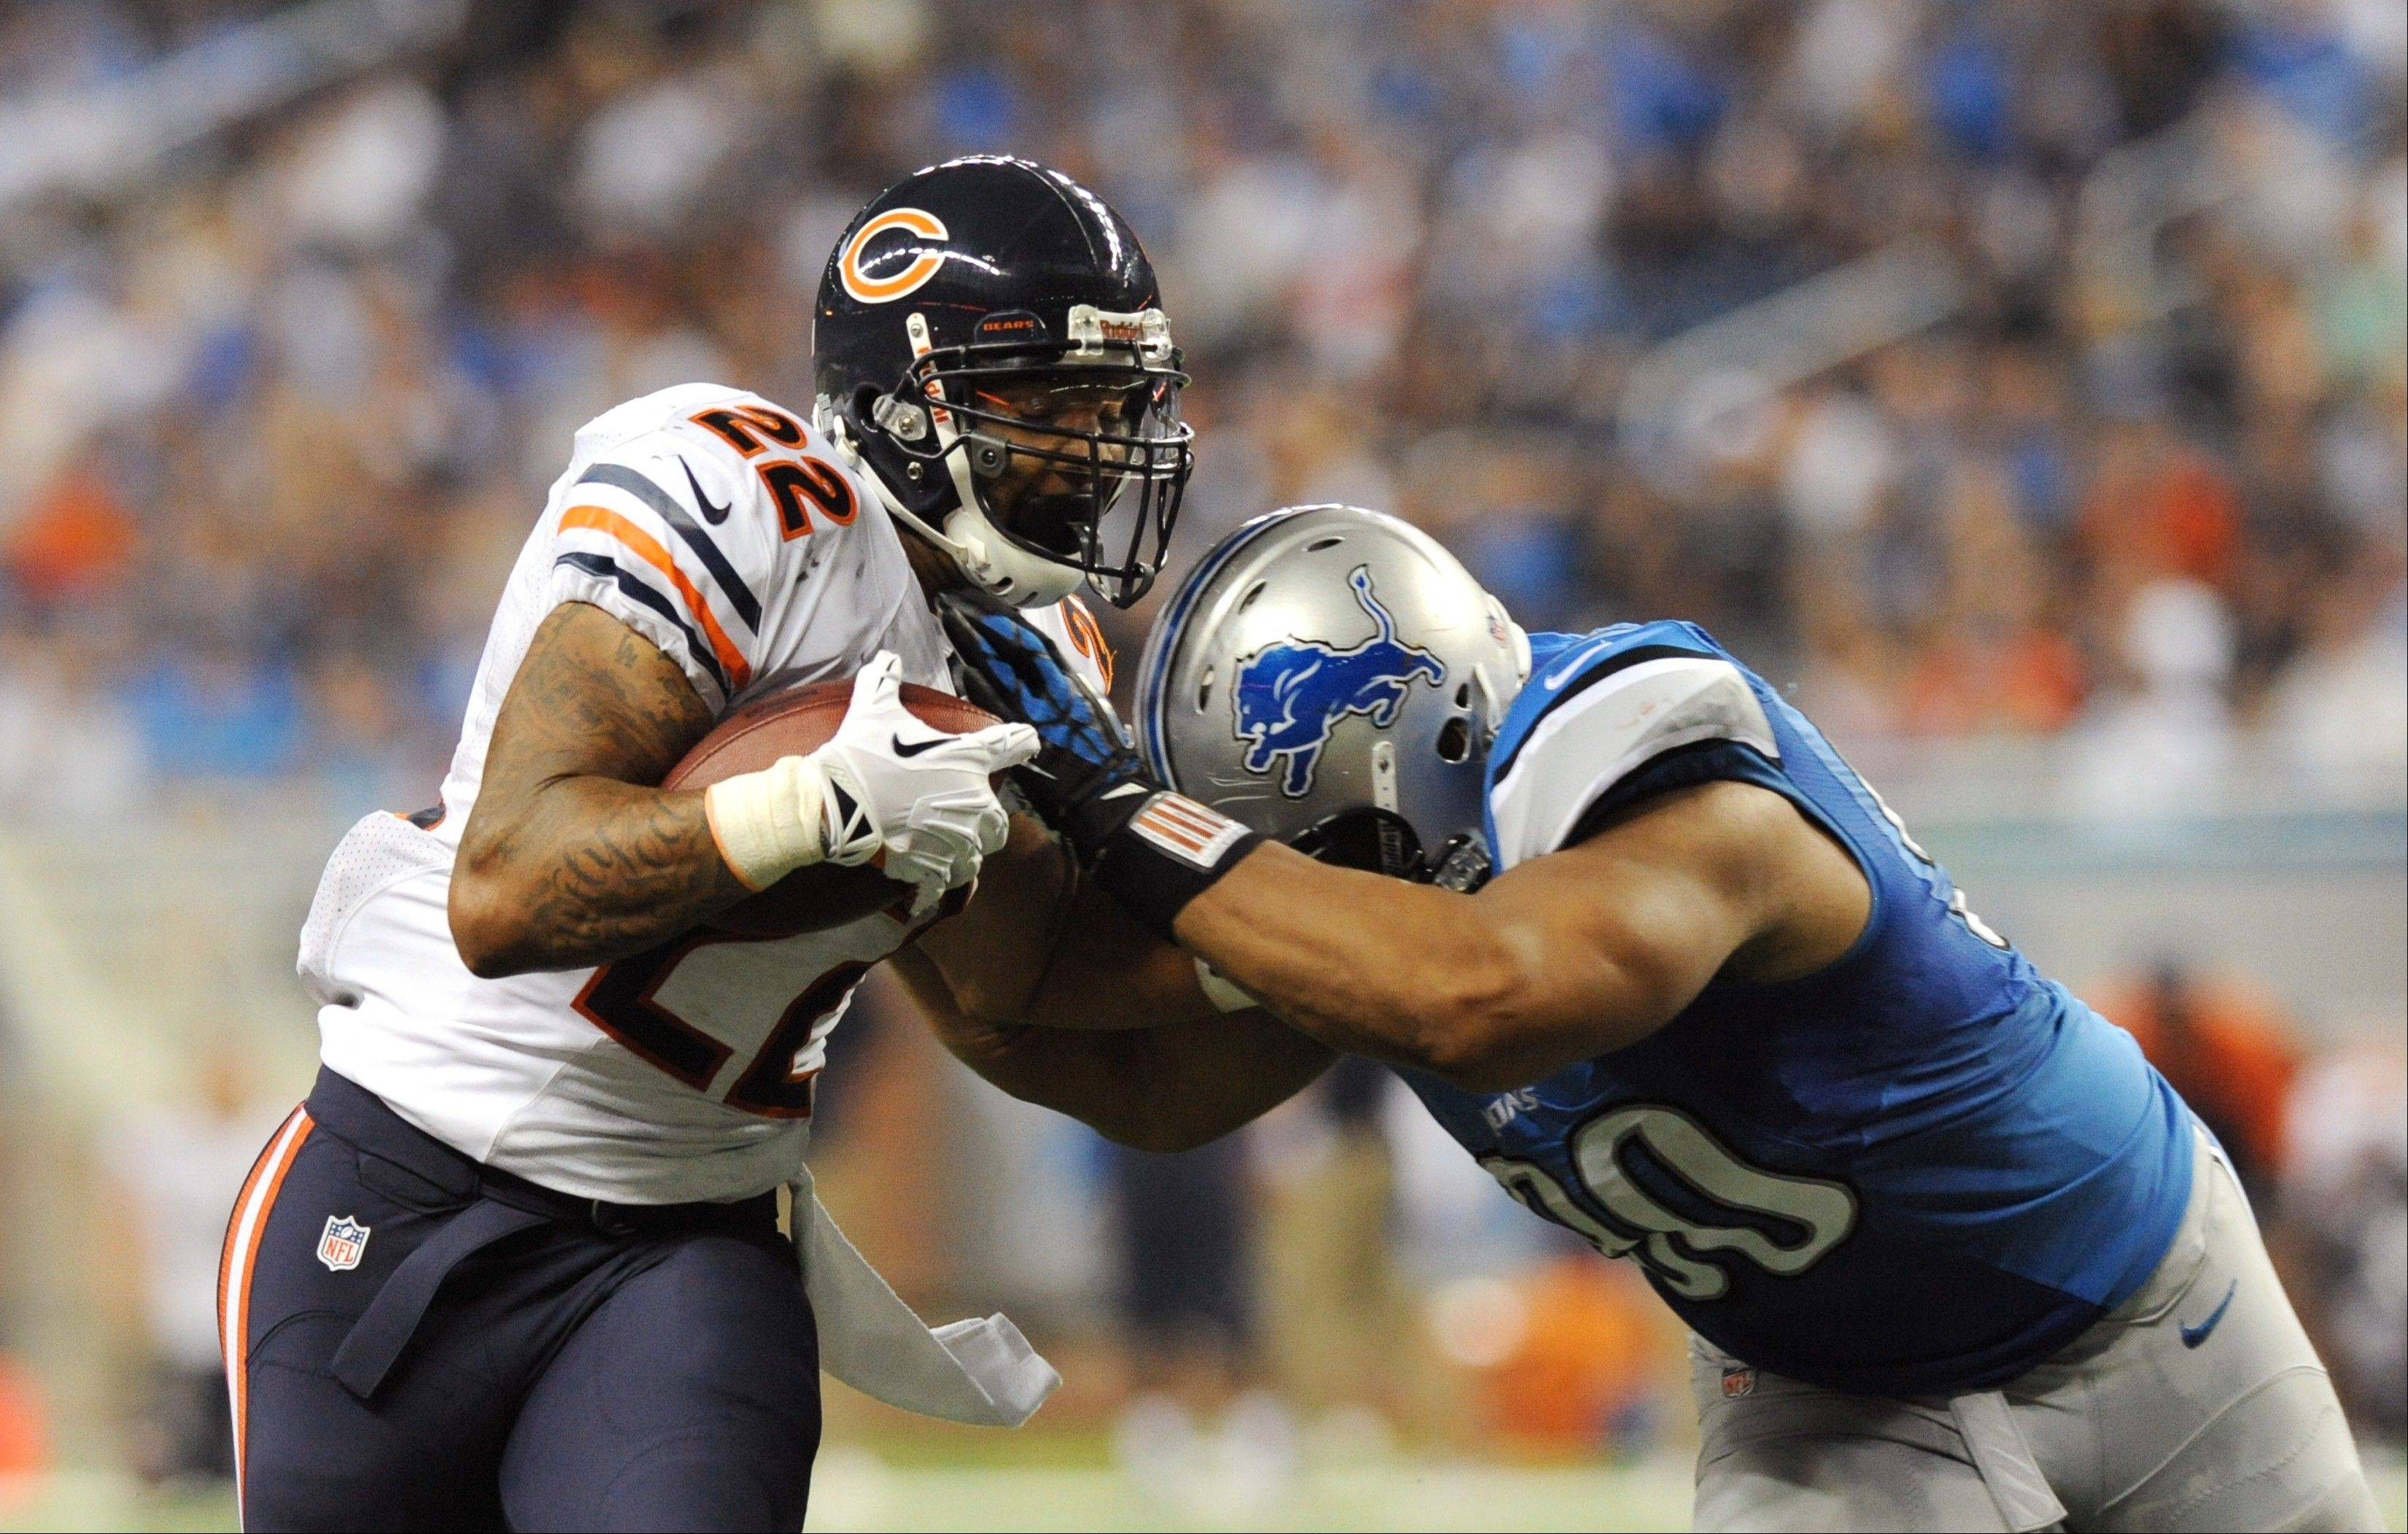 Bears running back Matt Forte is stopped by Detroit Lions defensive tackle Ndamukong Suh in Sunday's third quarter at Ford Field in Detroit.